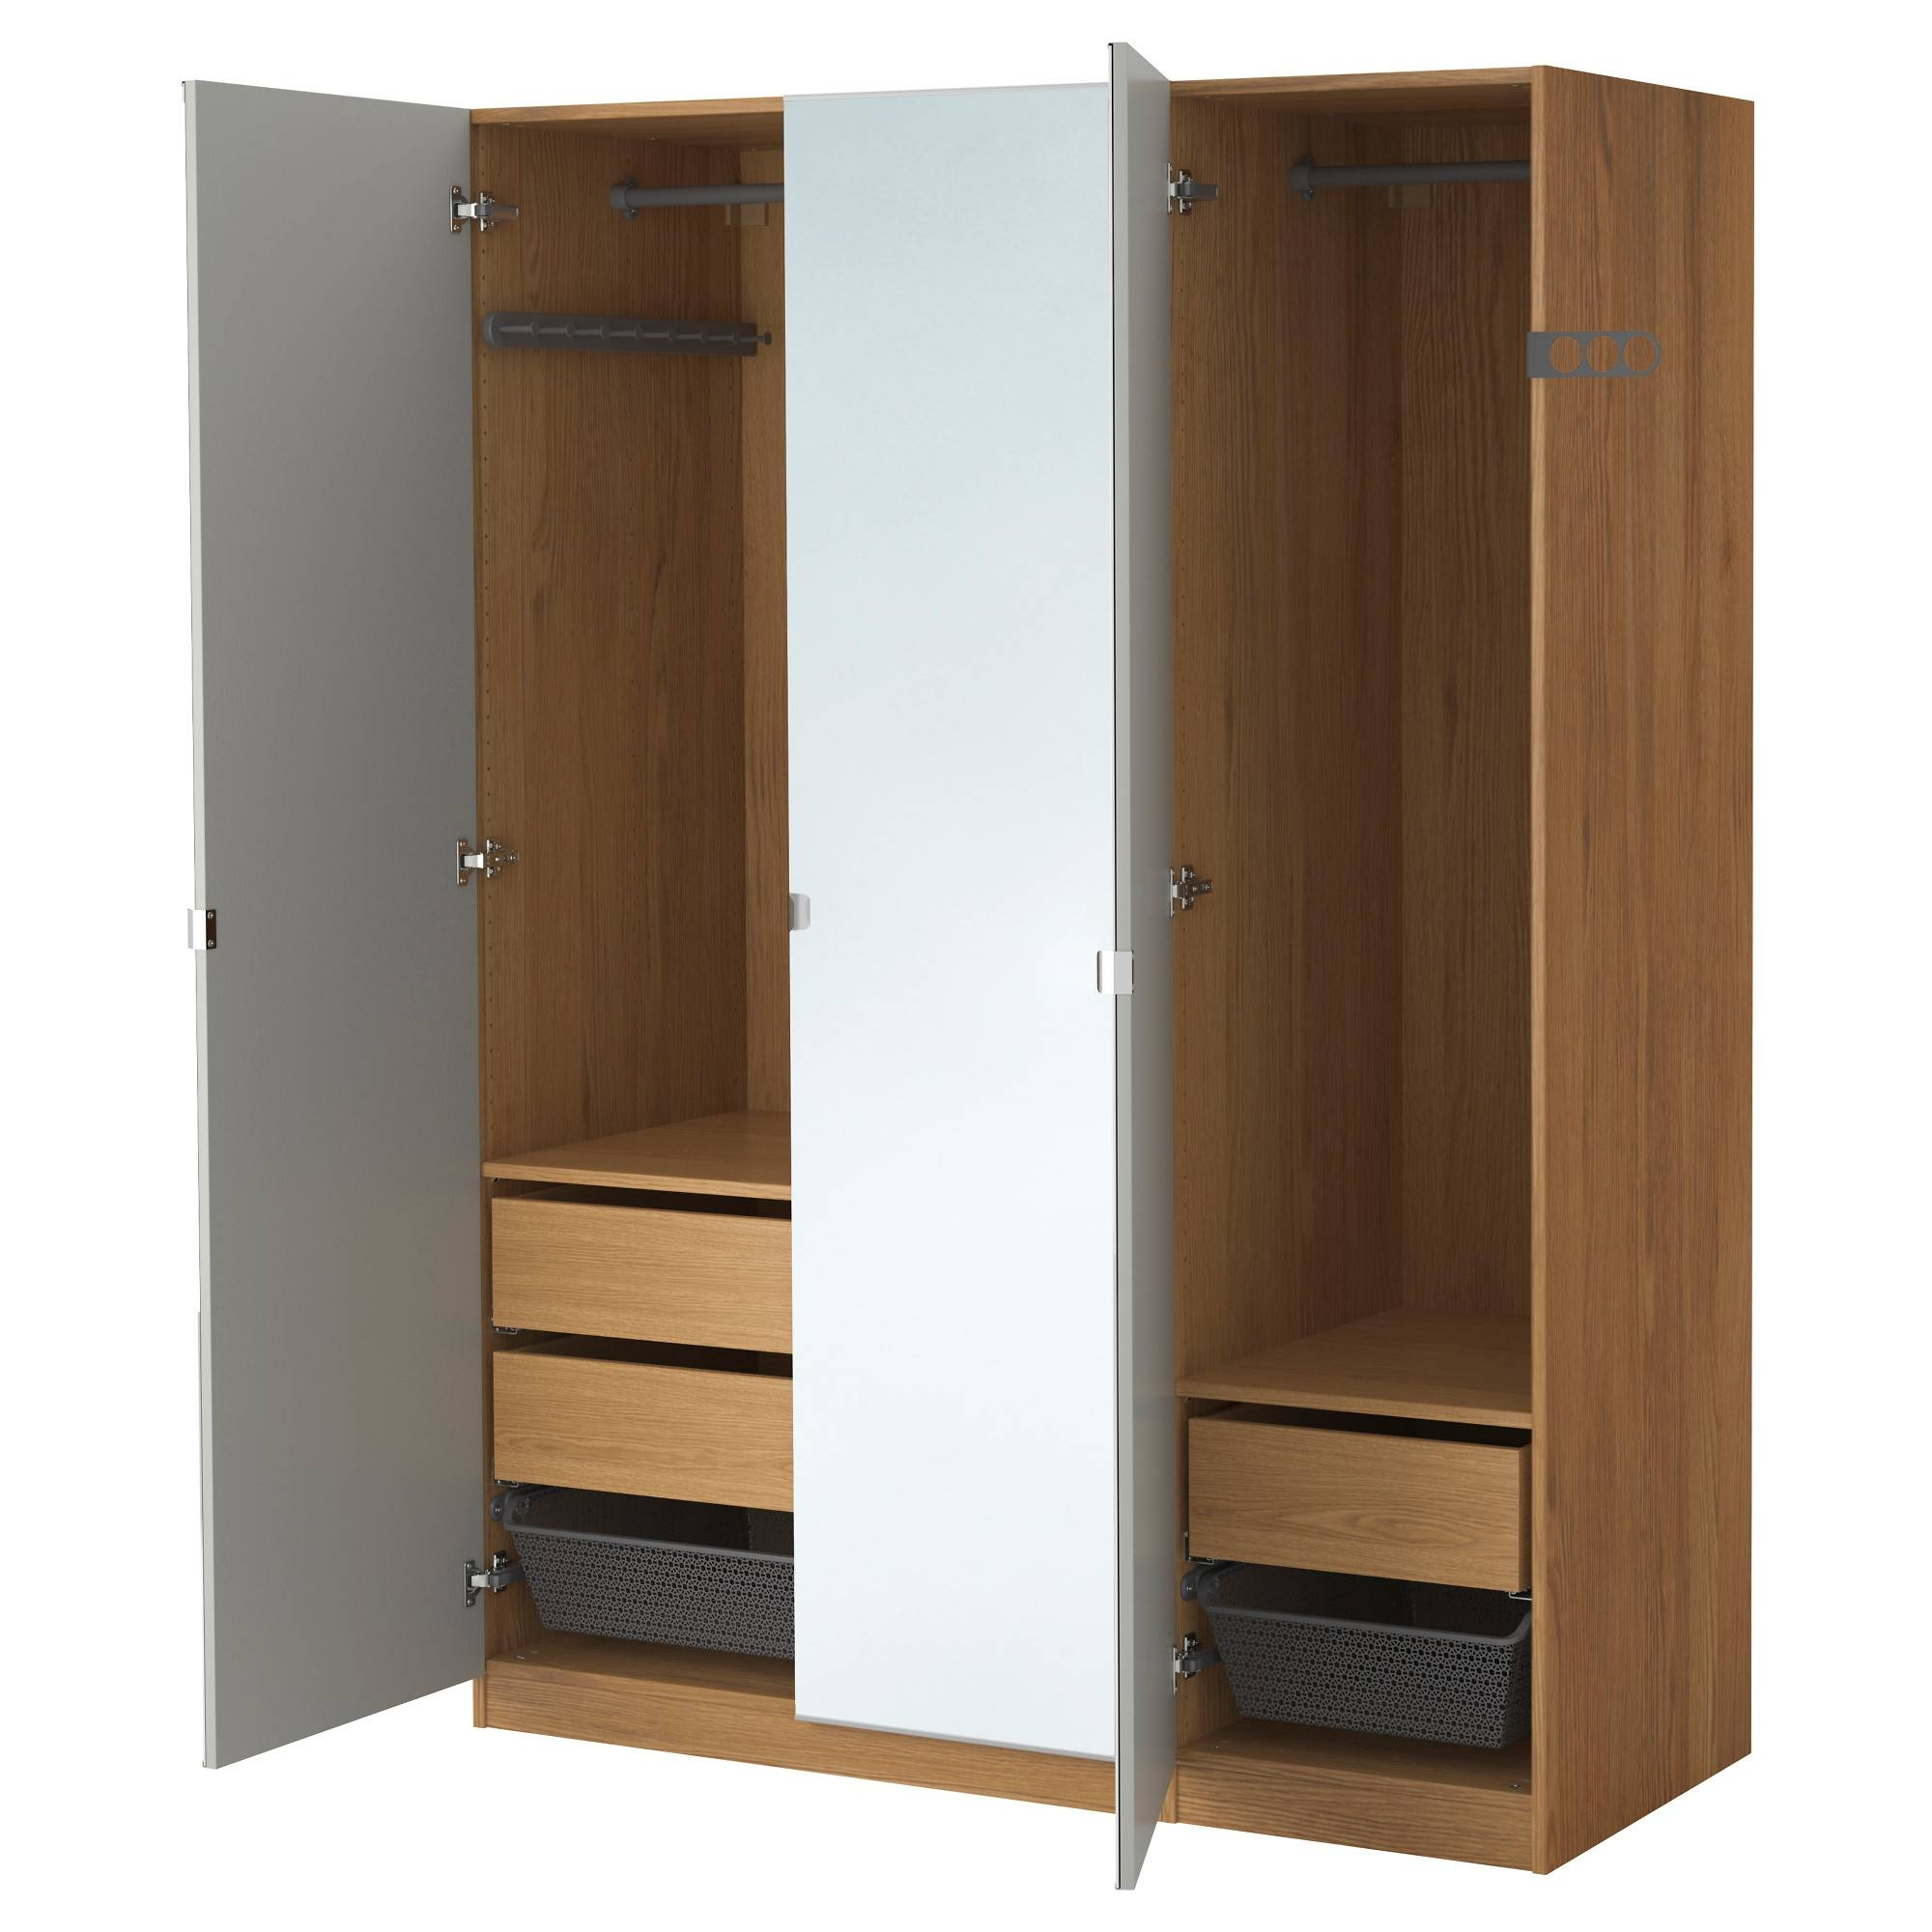 Wardrobes | Ikea intended for Cheap Wooden Wardrobes (Image 15 of 15)